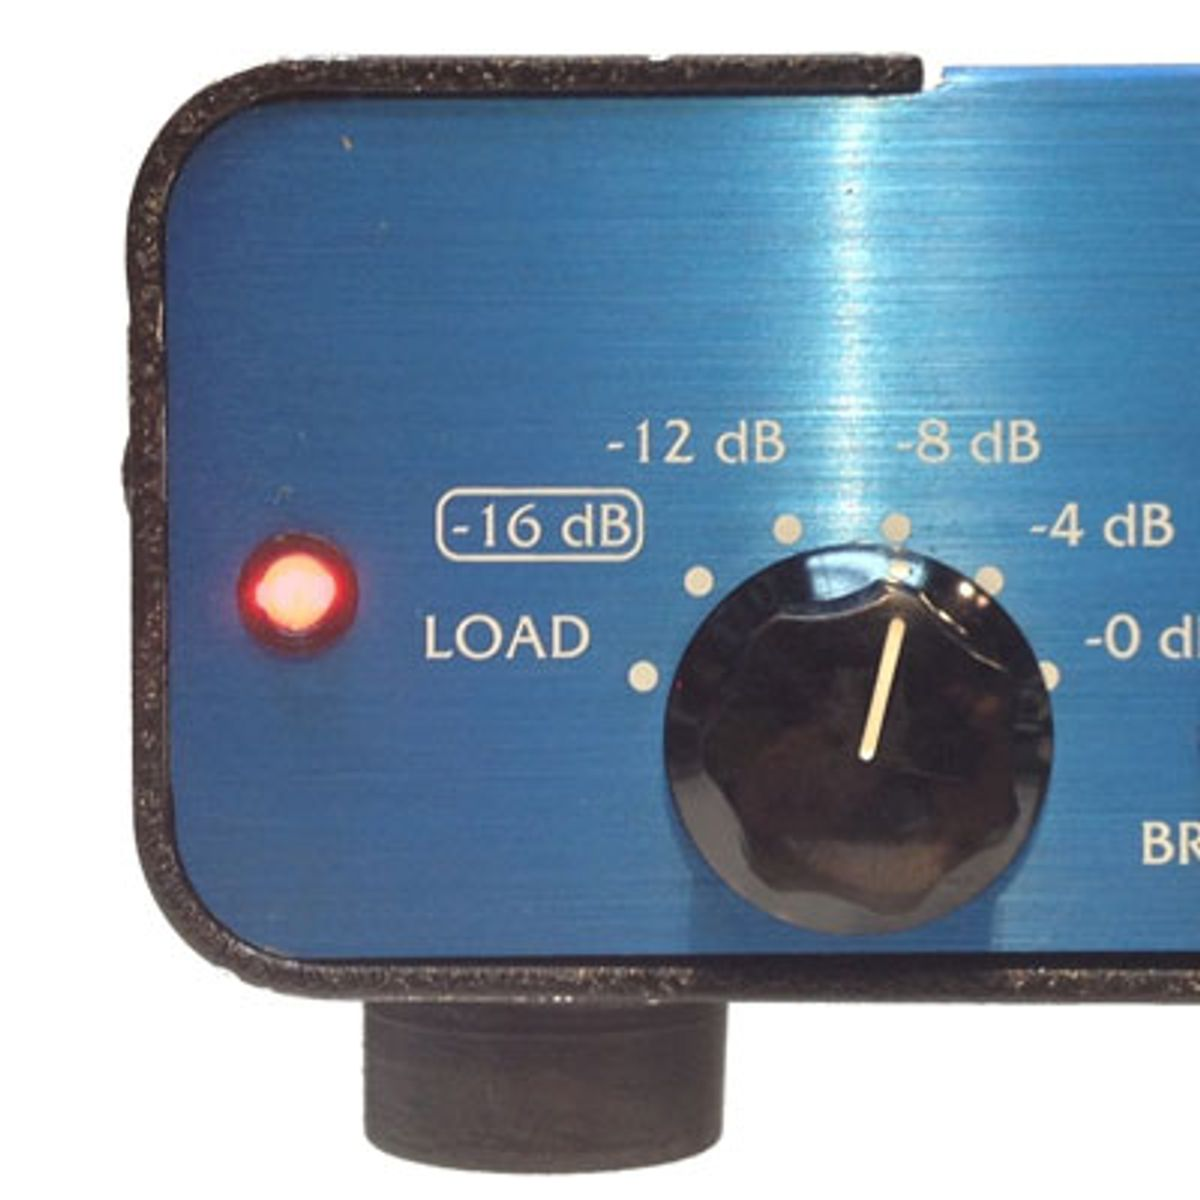 BC Audio Introduces the Hot Foot Mod